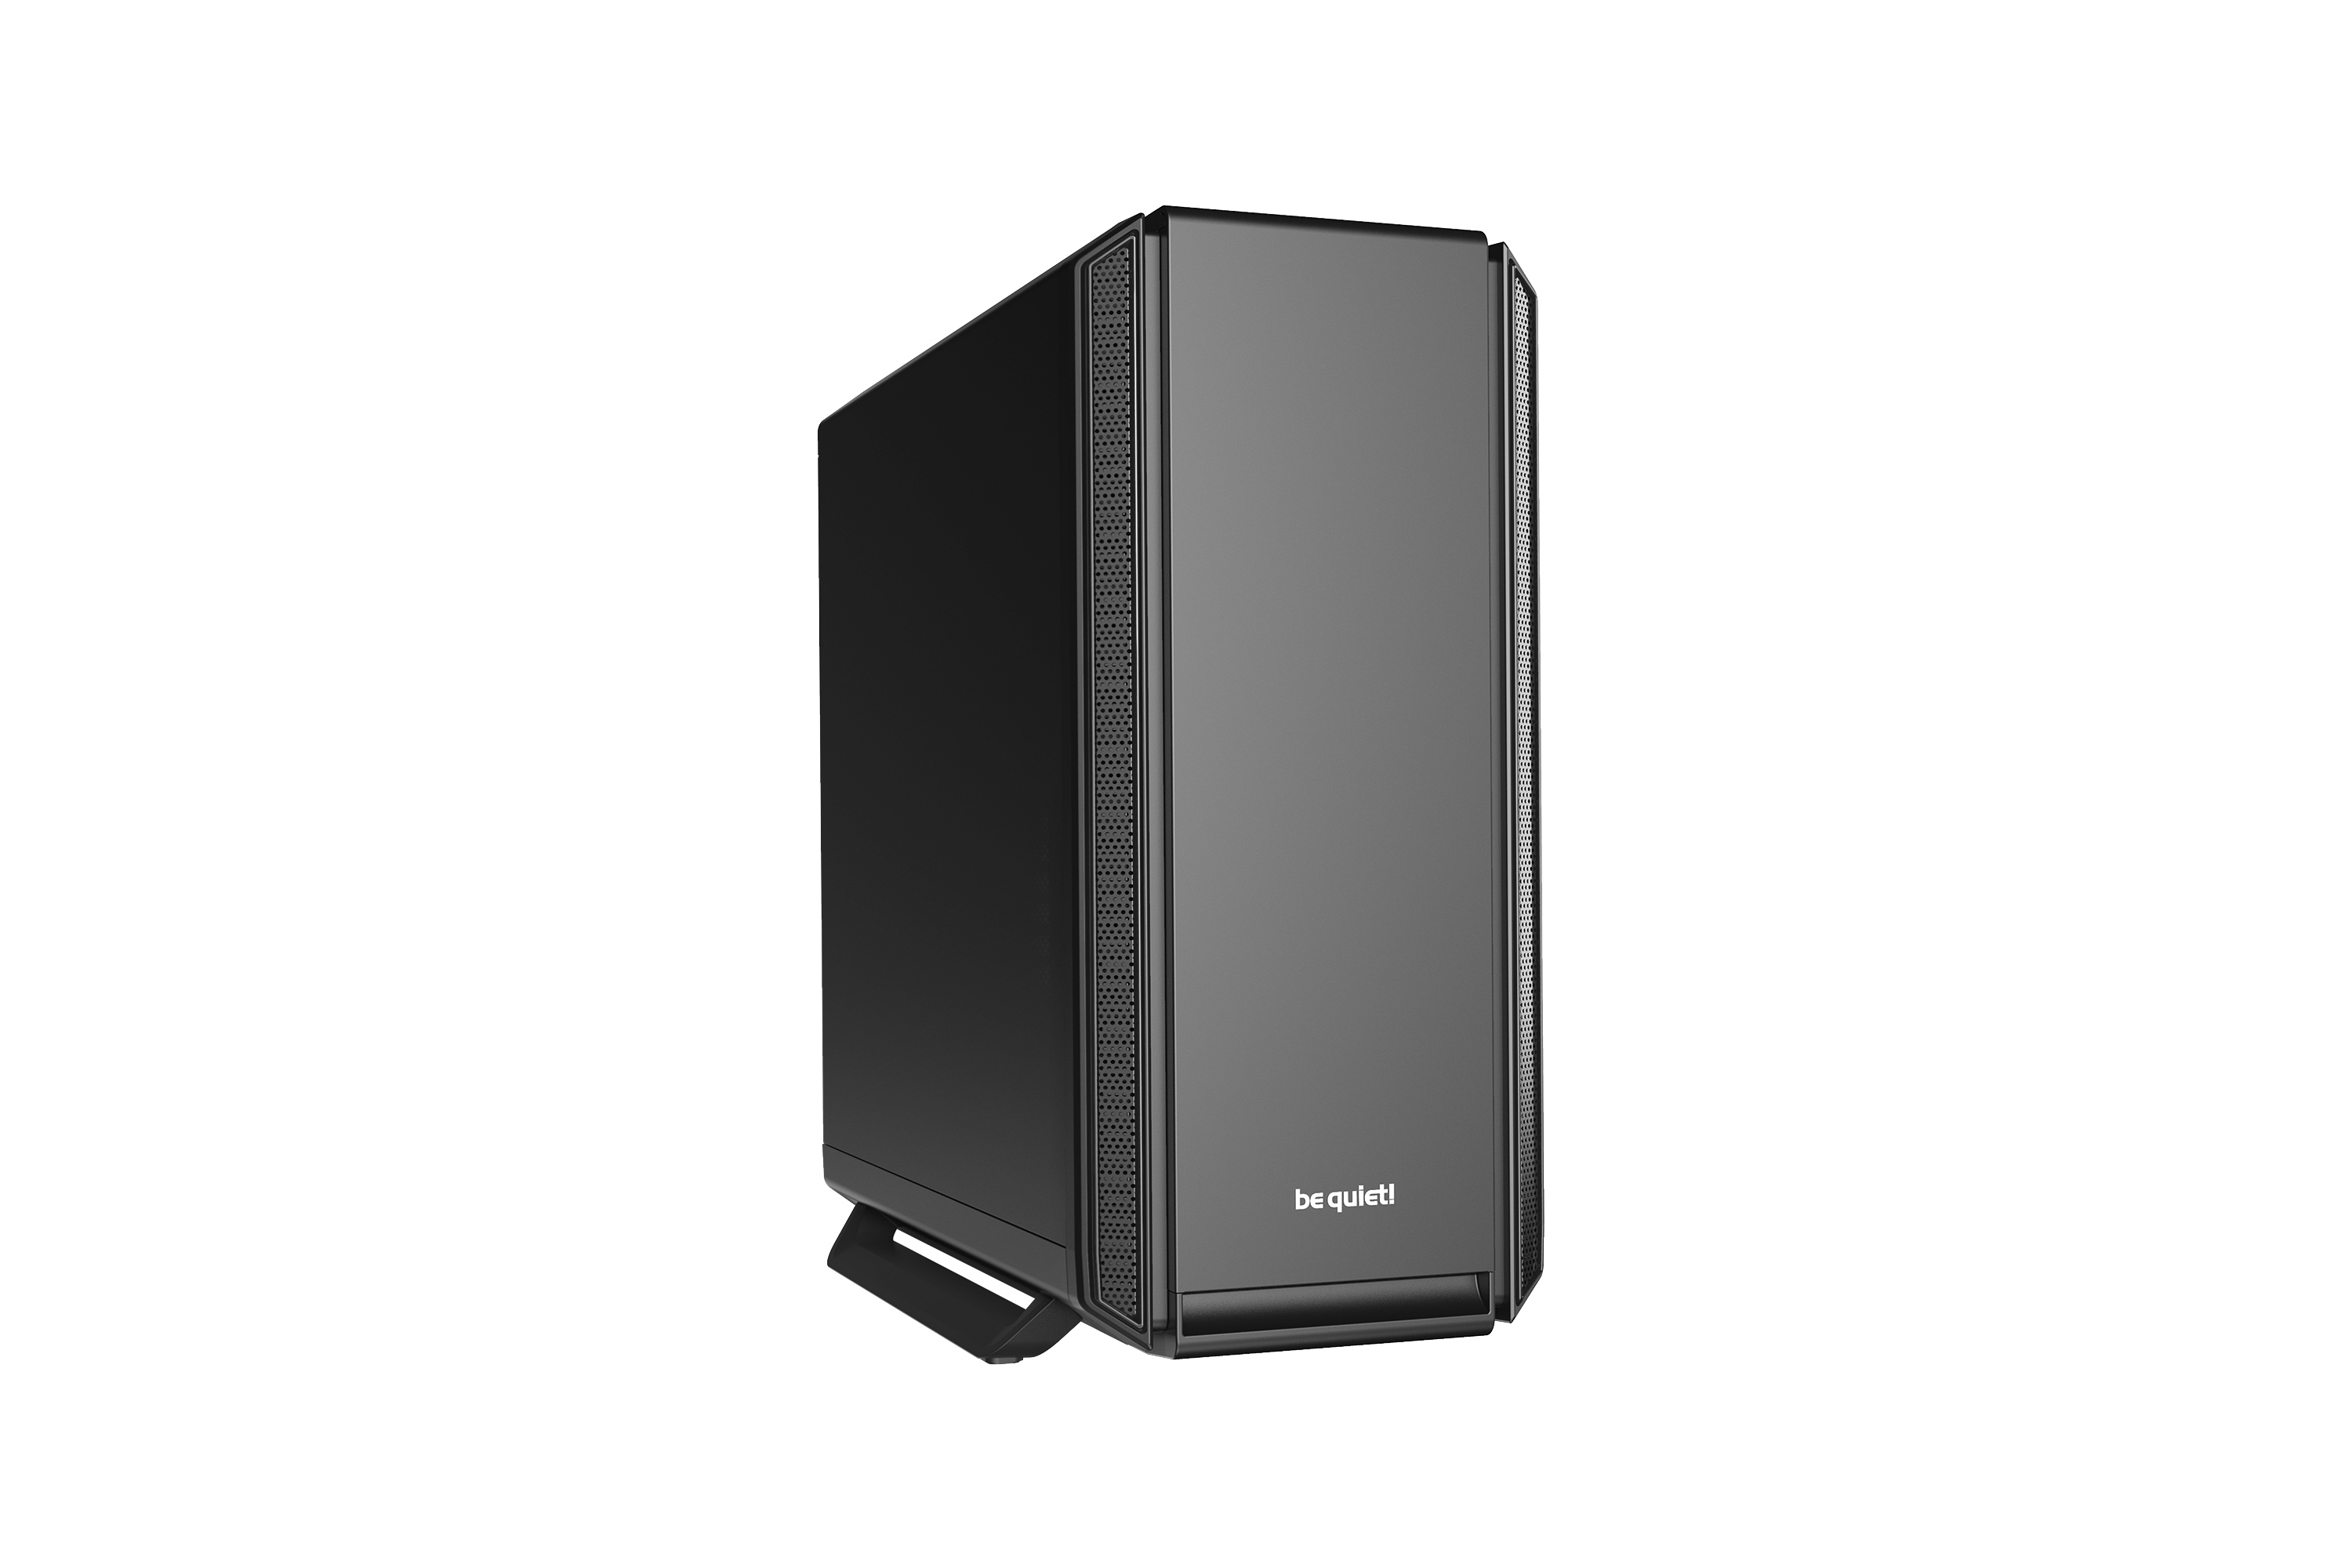 be quiet! Silent Base 801 Black, 539 x 281 x 553, IO-panel 2x USB 3.0, 1x USB 2.0, HD Audio, 5 (7) x 3,5, 11 (15) x 2,5, inc 2x Front / 1x Rear 140 mm Pure Wings 2, dual air channel cooling, 3-in-1 airintake sidepanel